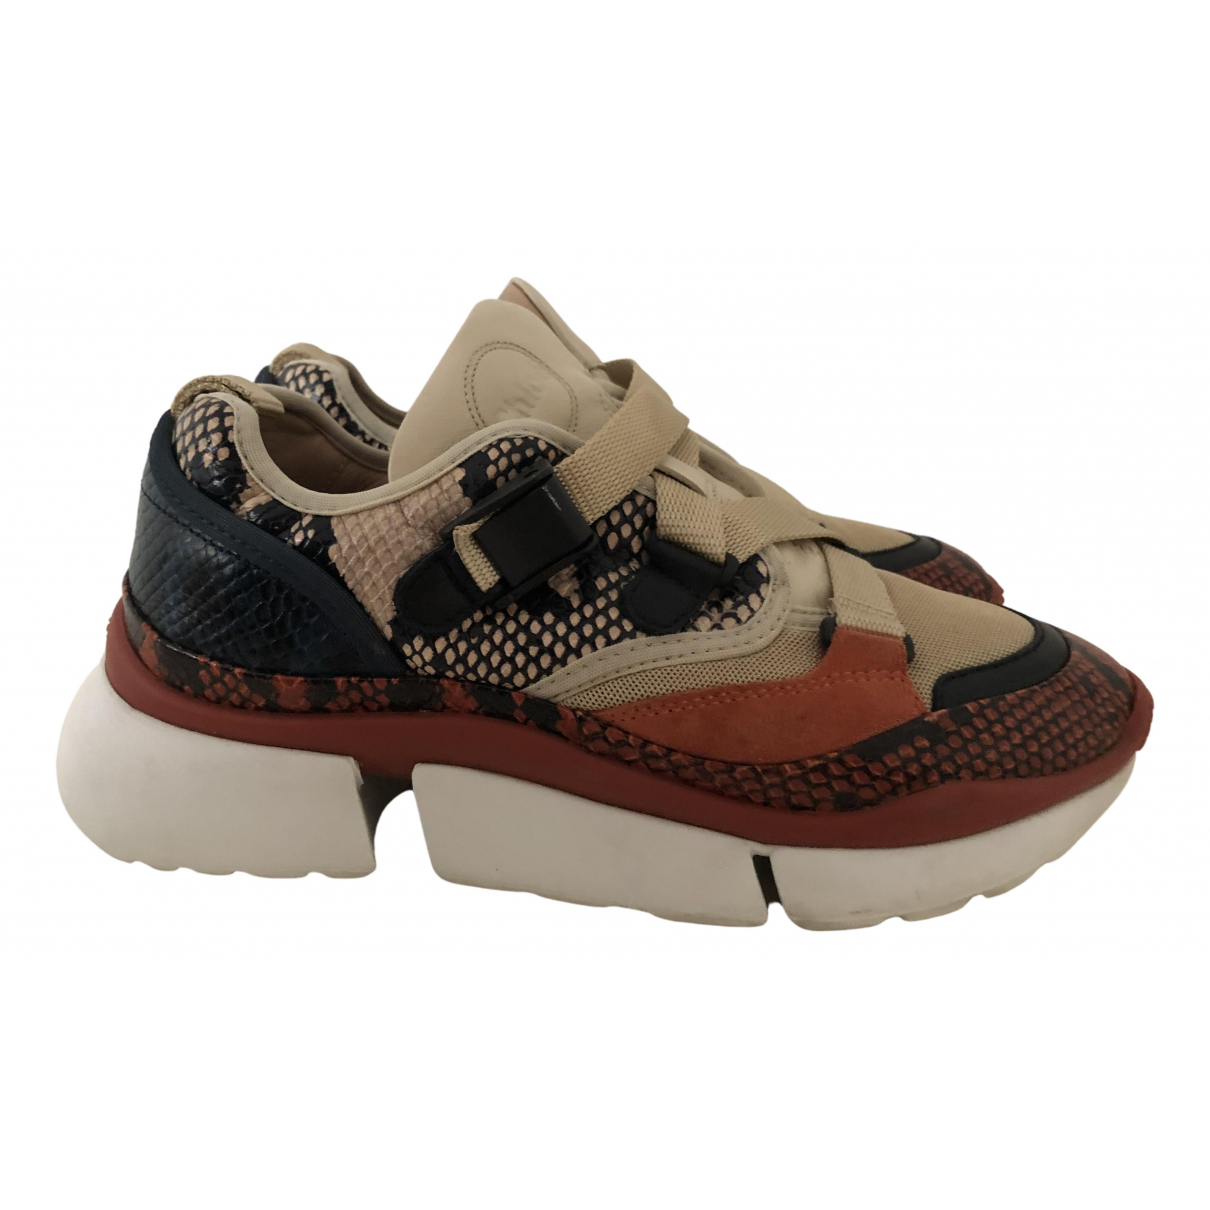 Chloé Sonnie Multicolour Water snake Trainers for Women 37 EU